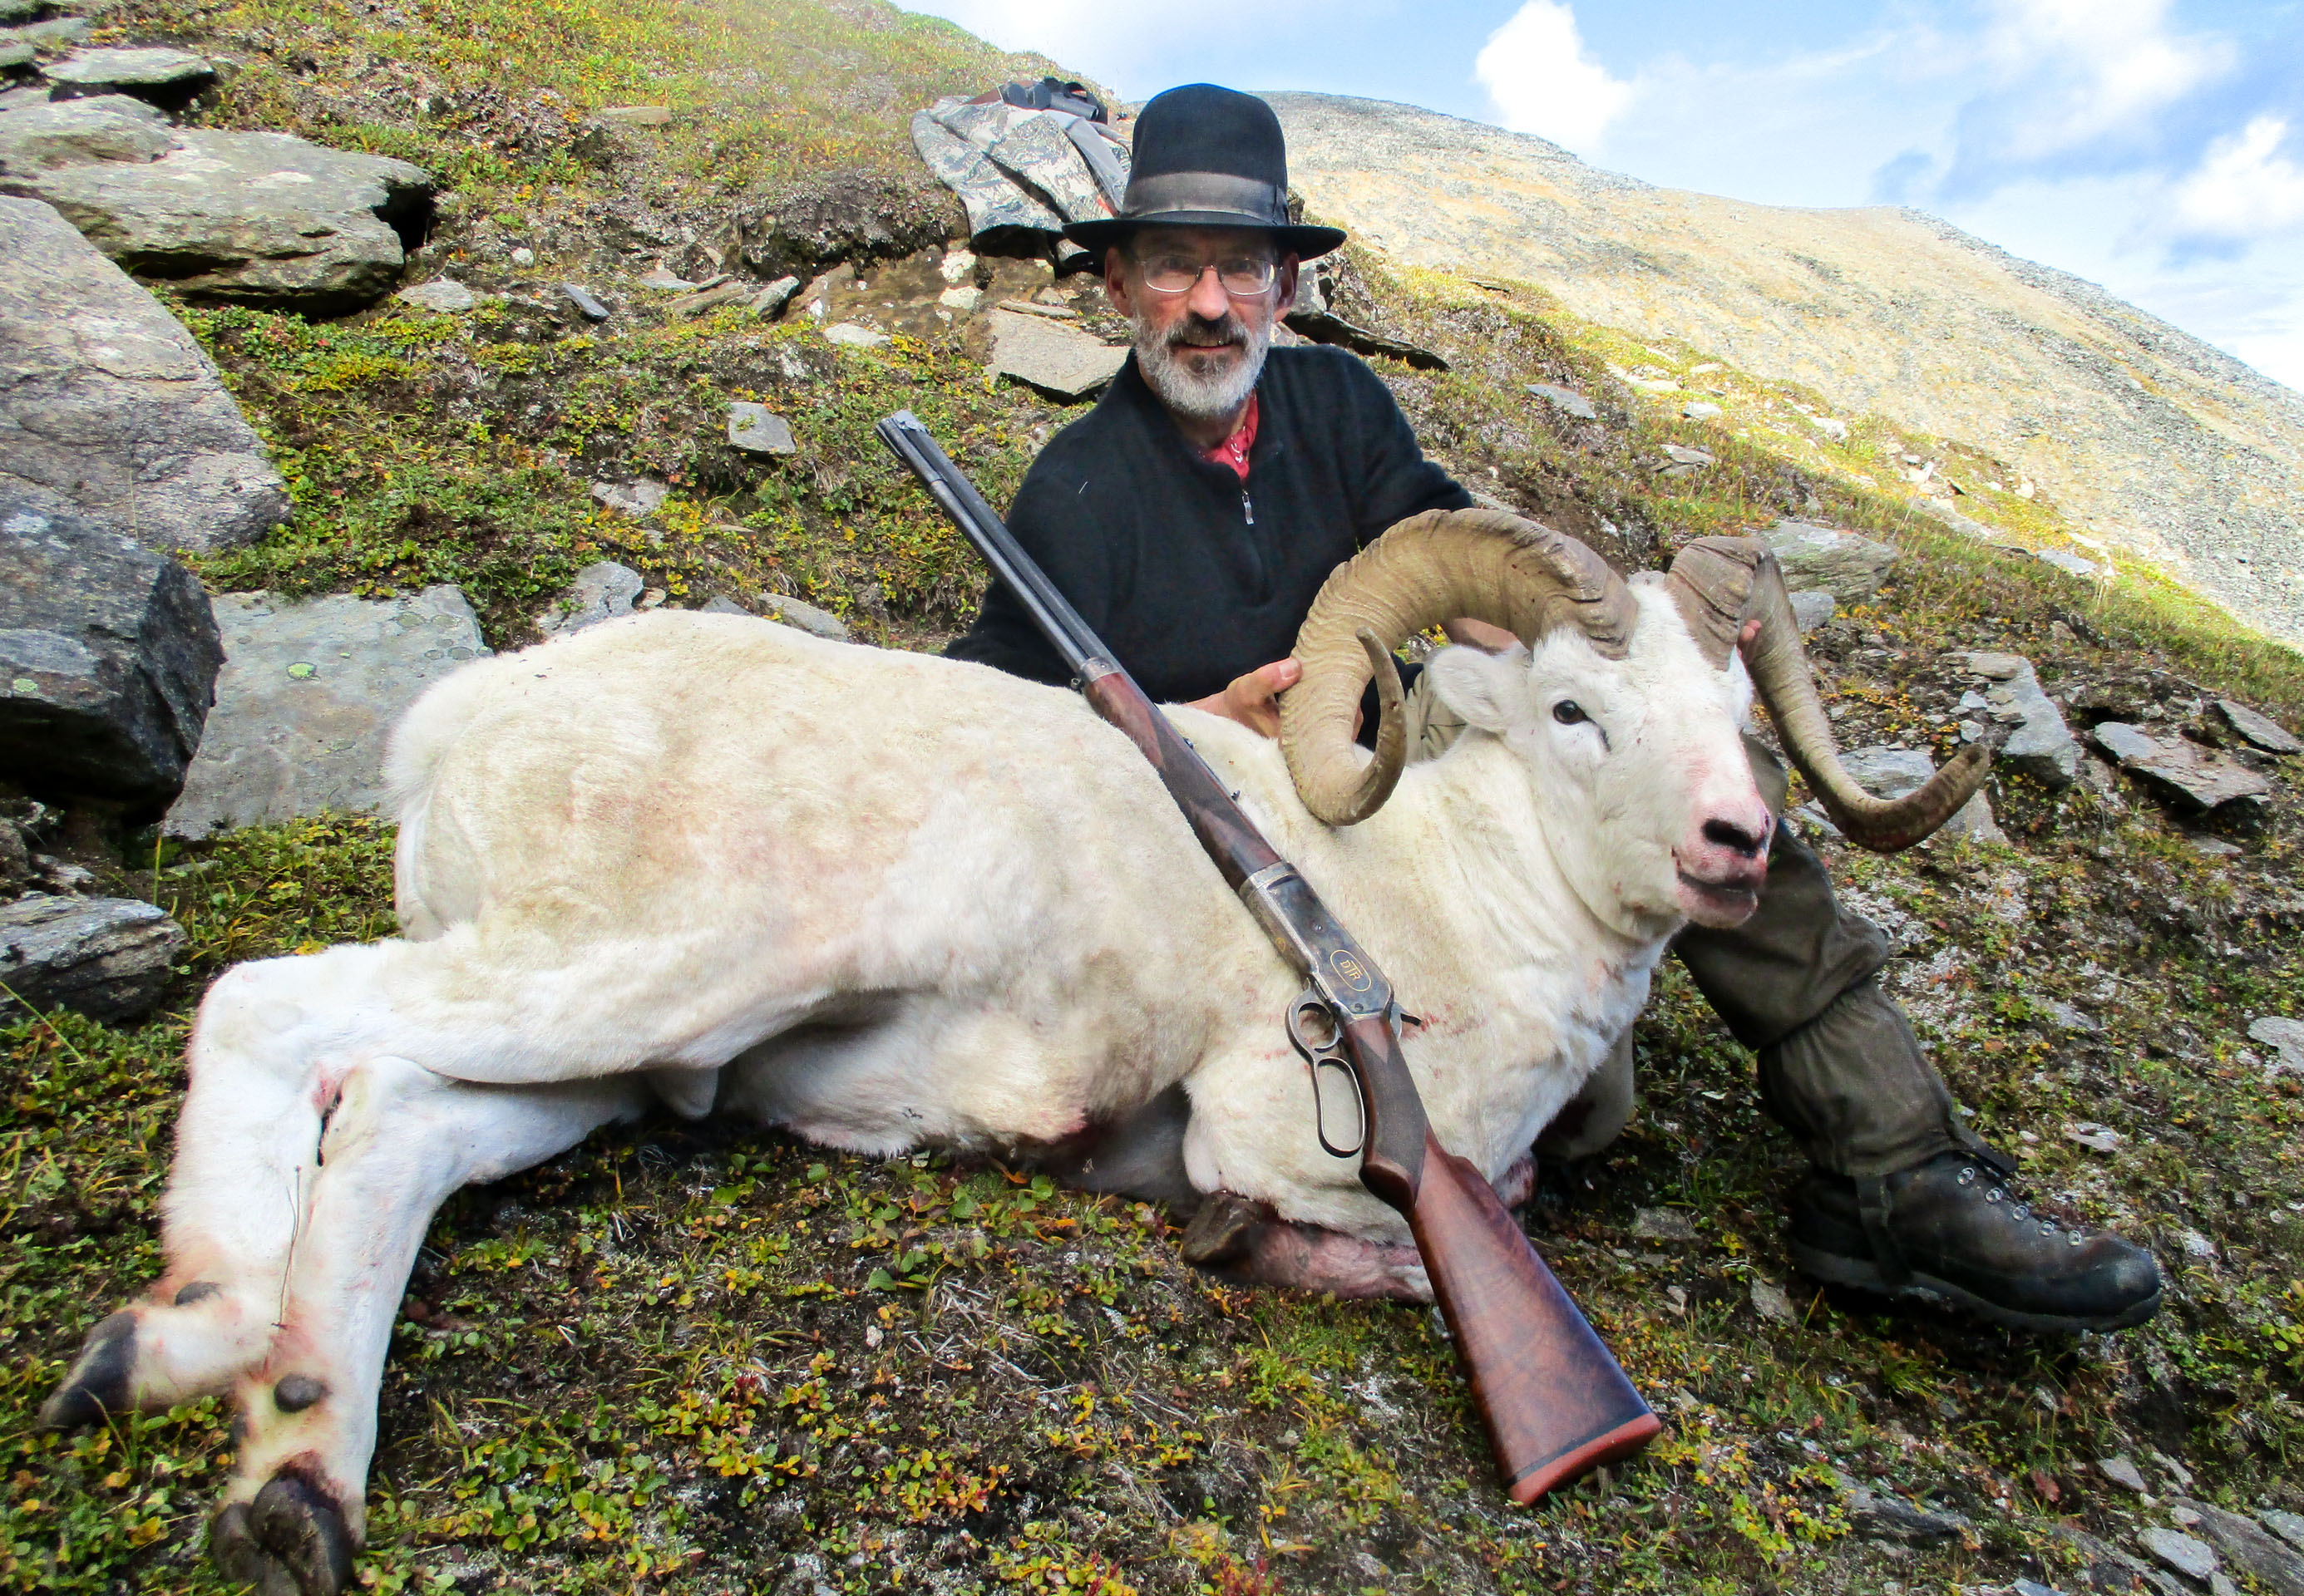 Photo of Doug Turnbull's 2016 Dall sheep hunt in the Alaskan Brooks Range, using his restored Winchester 1886 in .475 Turnbull